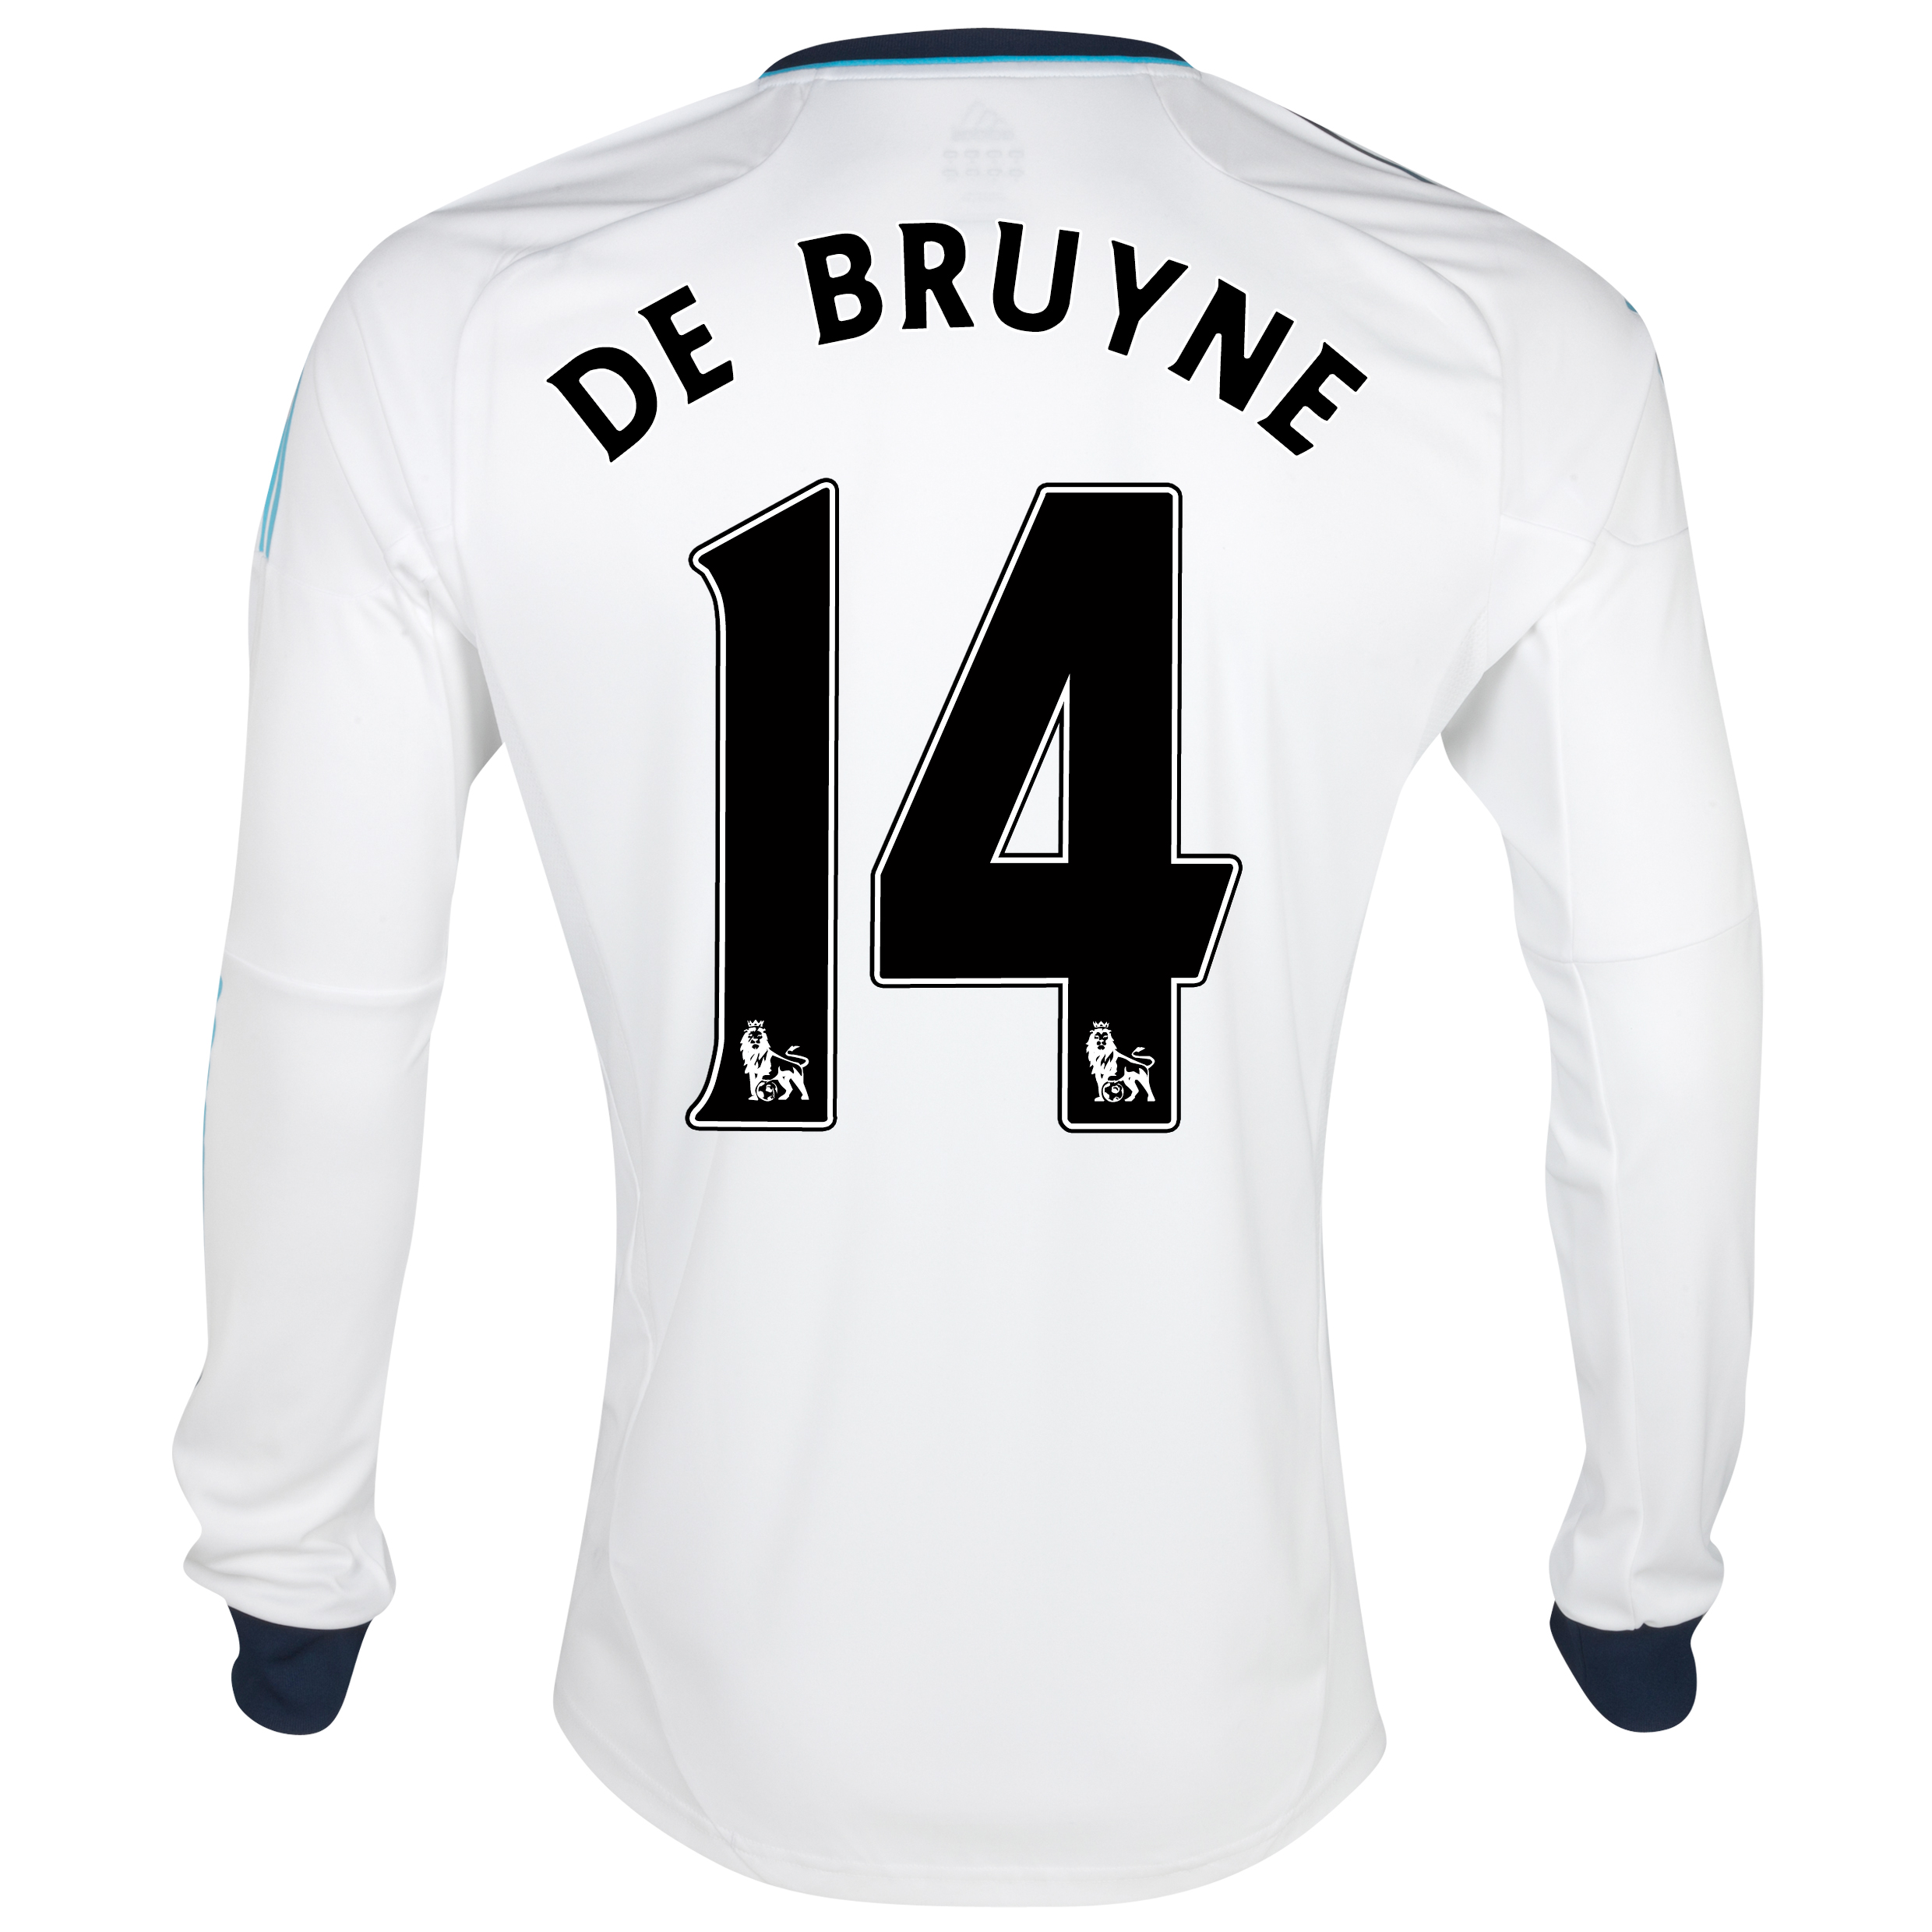 Chelsea Away Shirt 2012/13 - Long Sleeved  - Youths with De Bruyne 14 printing